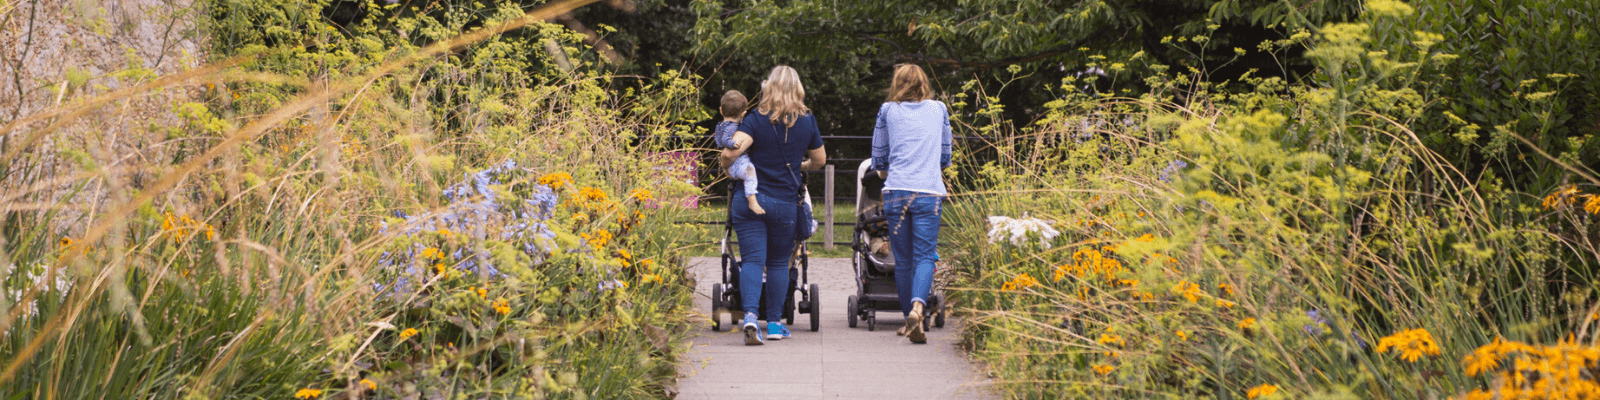 https://www.airfield.ie/wp-content/uploads/2020/07/Family-walk-at-Airfield-Estate-woodland-walk-1.png